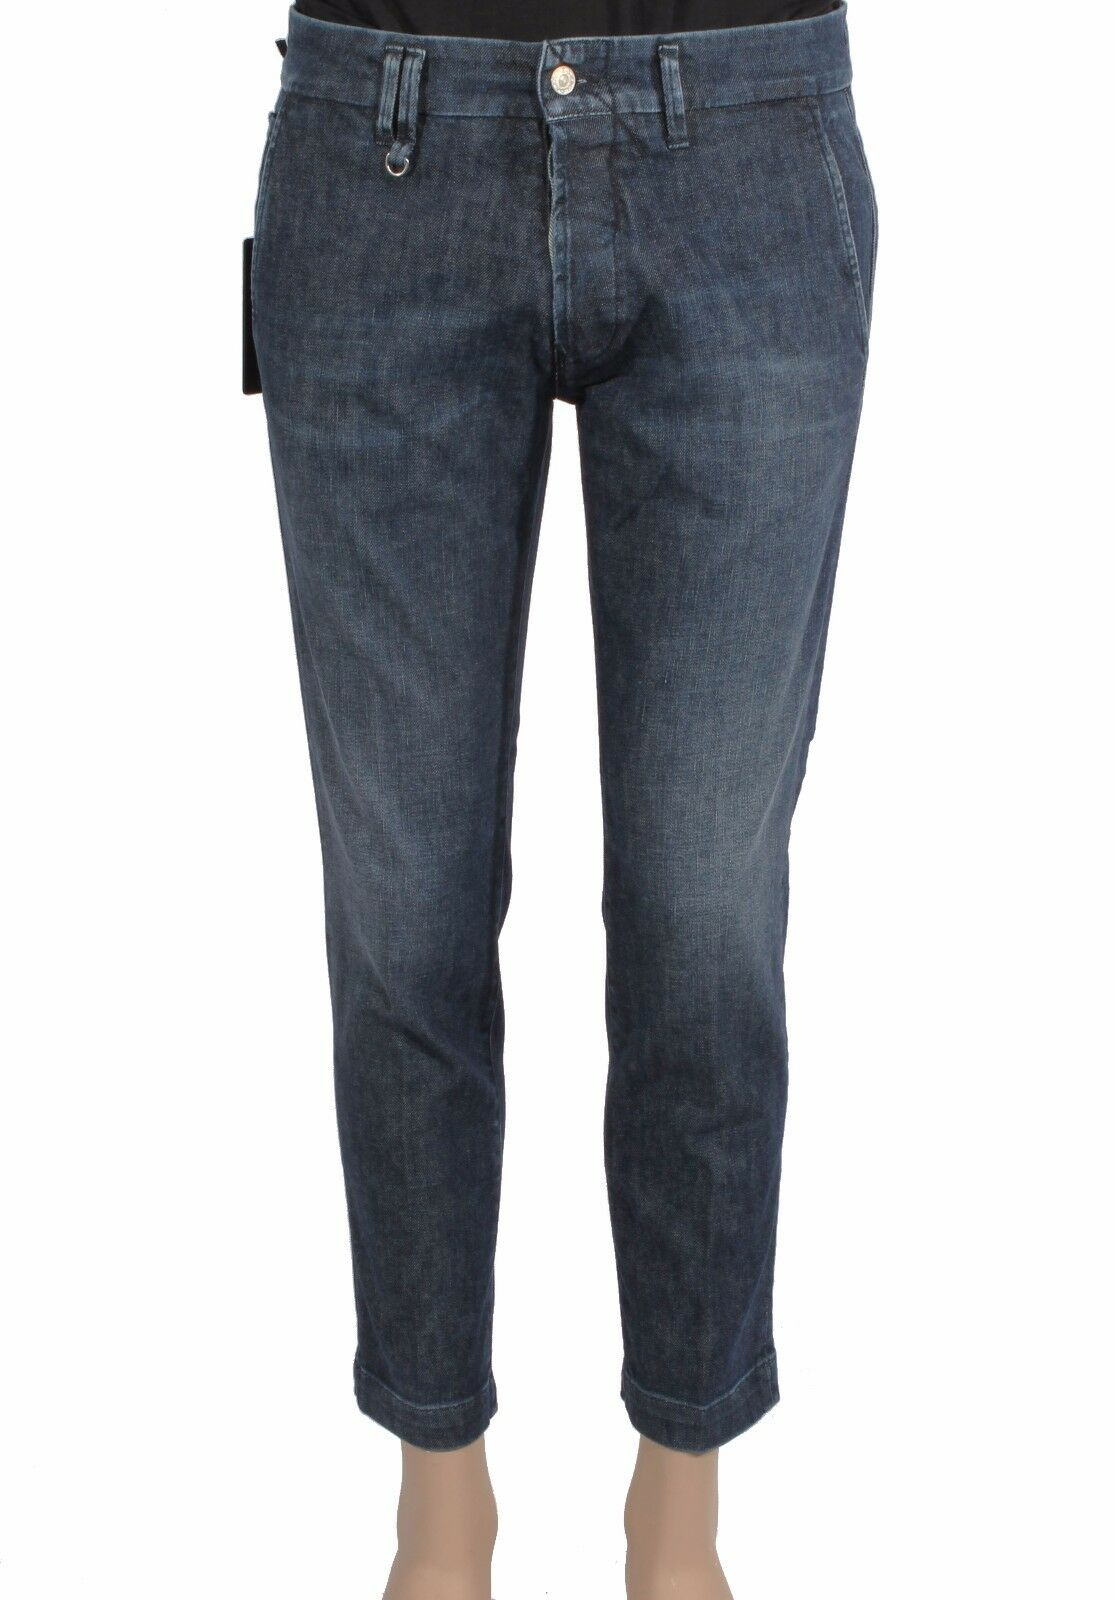 Vaqueros de hombre CYCLE MPT191 C D002 9034 Denim 12 OZ Confort denim indigo